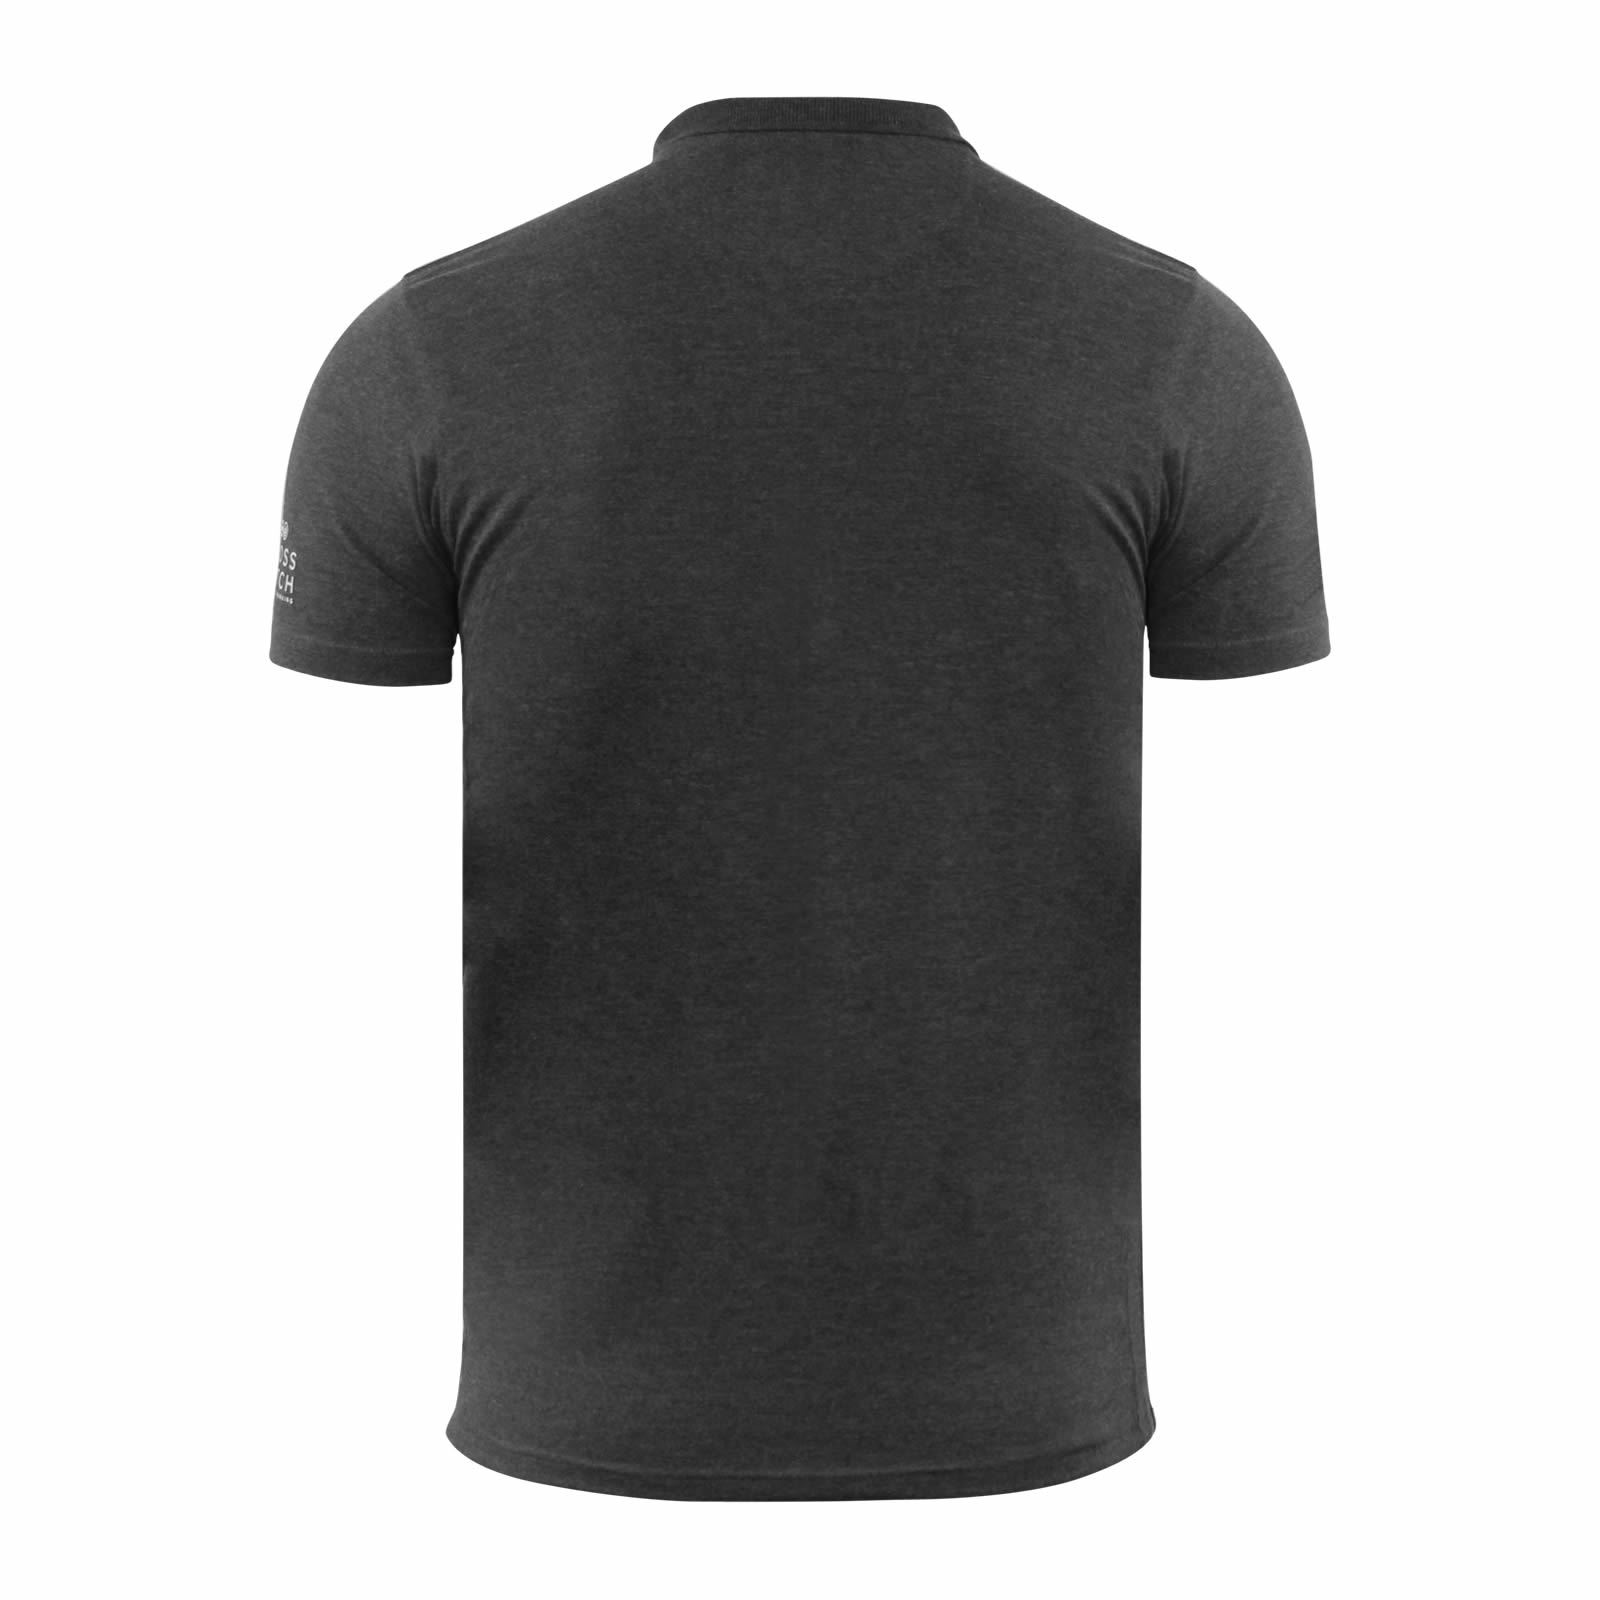 Mens-Polo-T-Shirt-Crosshatch-Evangels-Collared-Cotton-Short-Sleeve-Casual-Top thumbnail 18